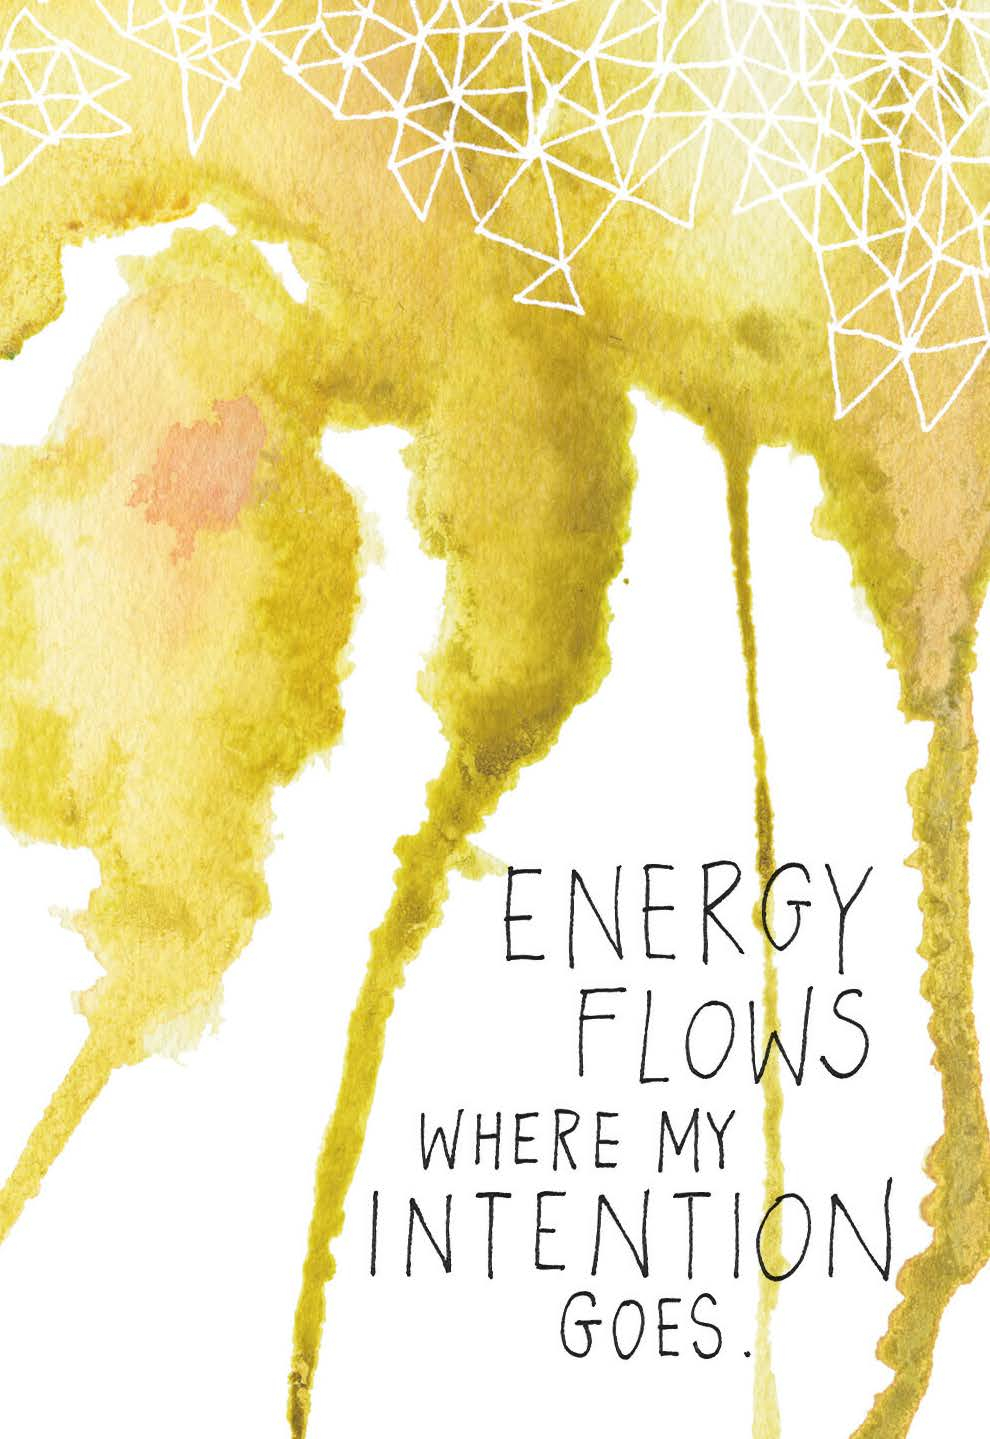 Energy flows where my intention goes | Gabby Bernstein | The Universe Has Your Back card deck - How to raise your energetic vibration